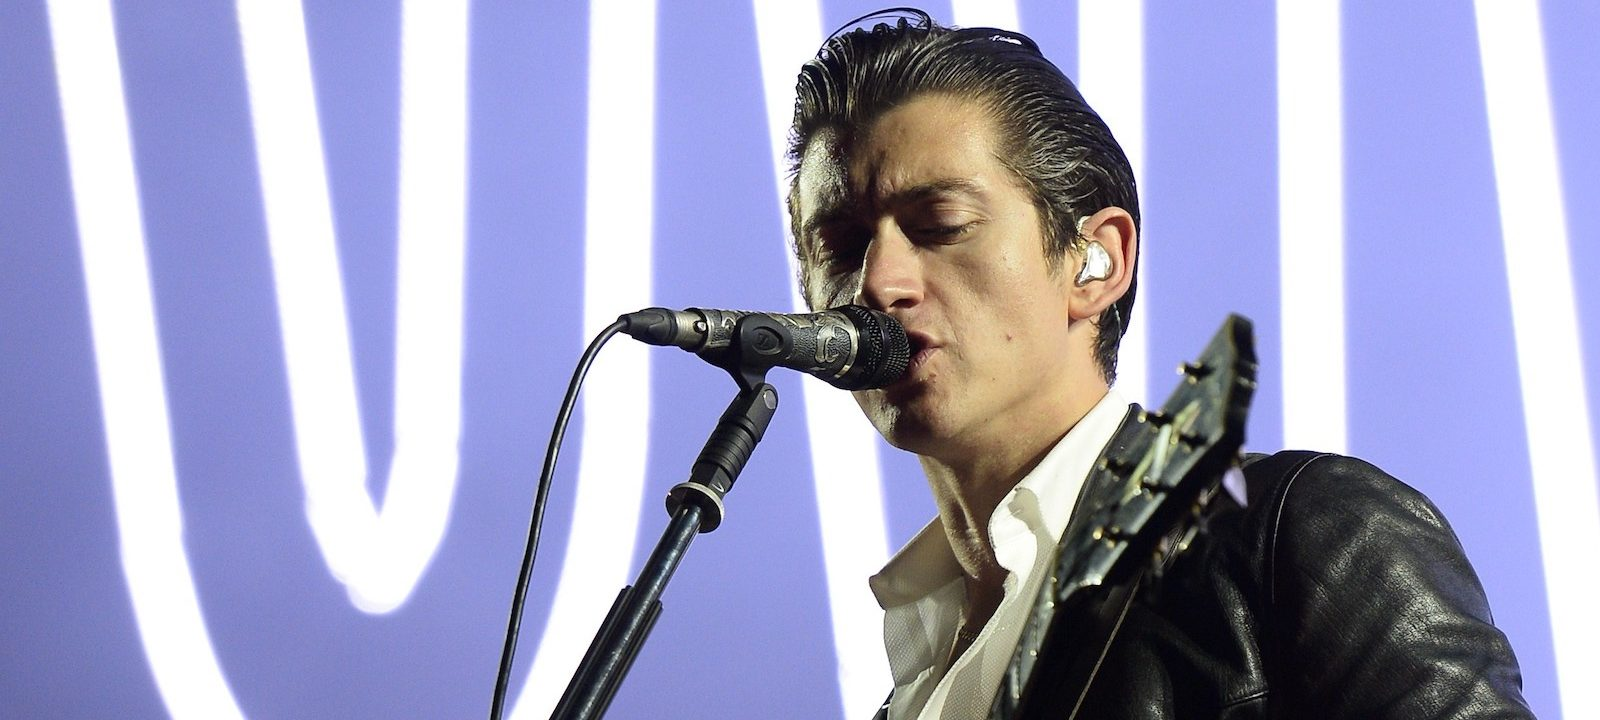 Alex Turner of British band Arctic Monkeys performs on stage during the Rock-en-Seine music festival on August 22, 2014 in Saint-Cloud, near Paris.